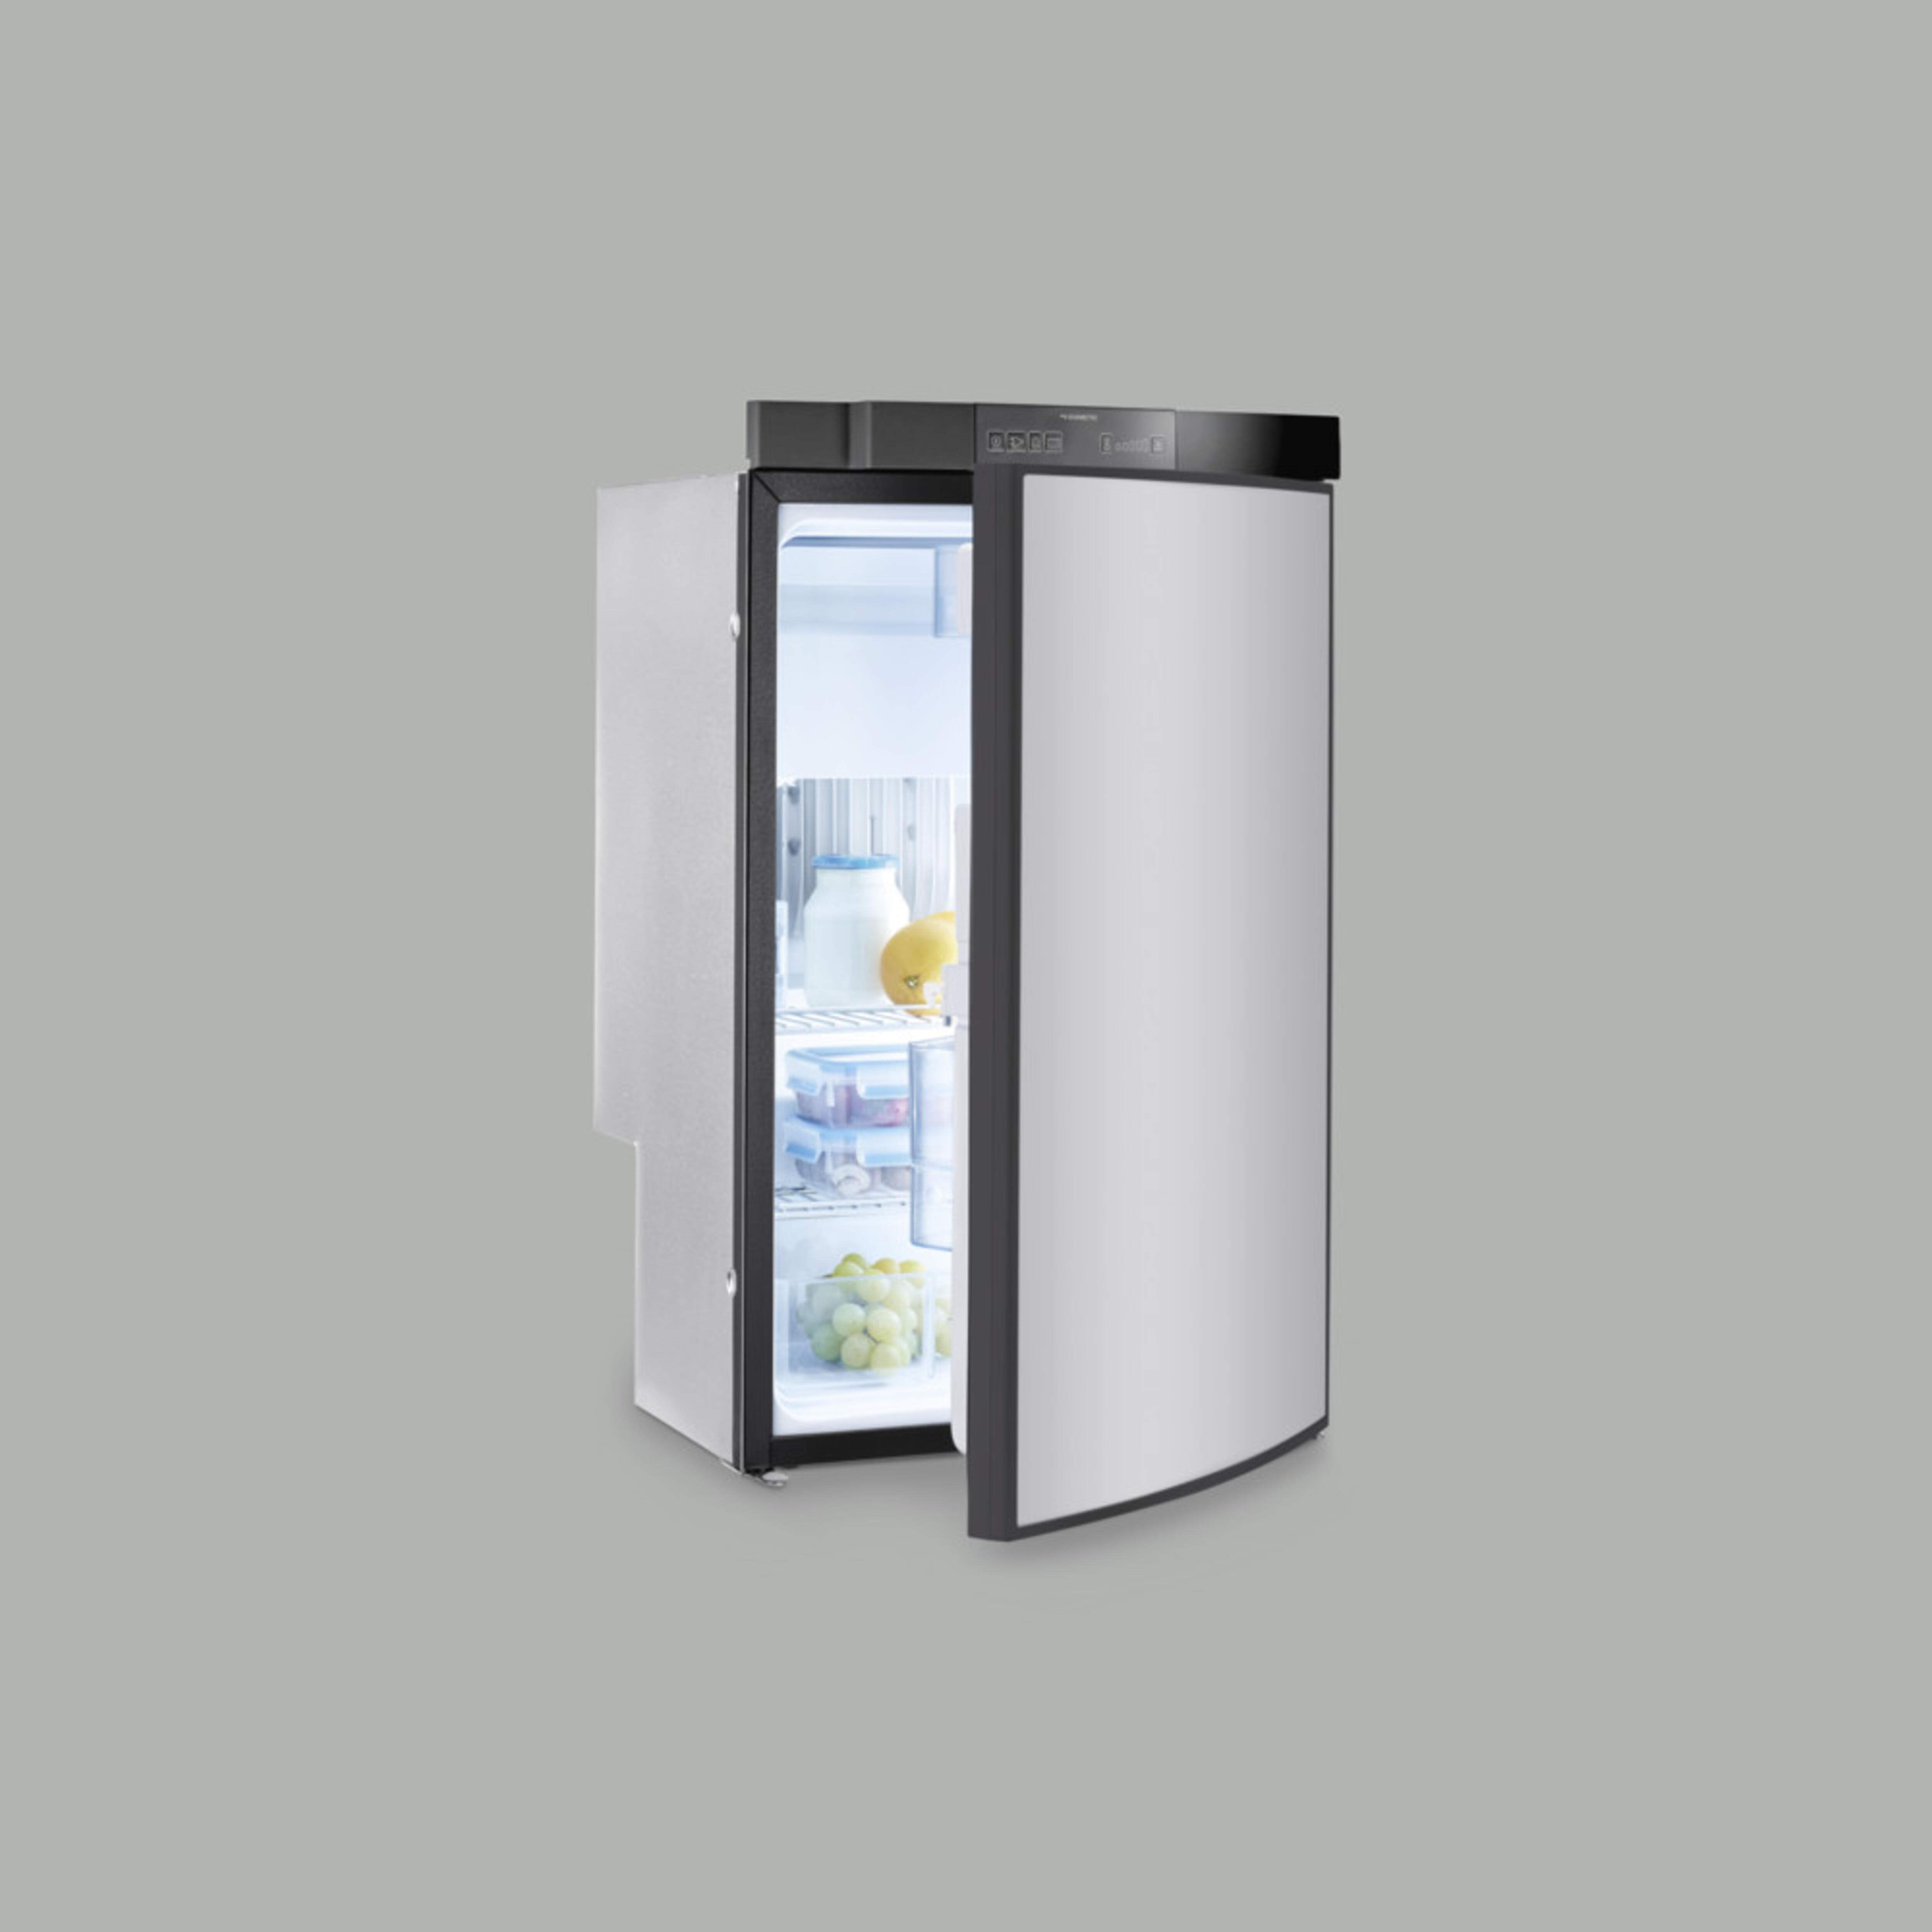 Dometic 8-Series Refrigerator